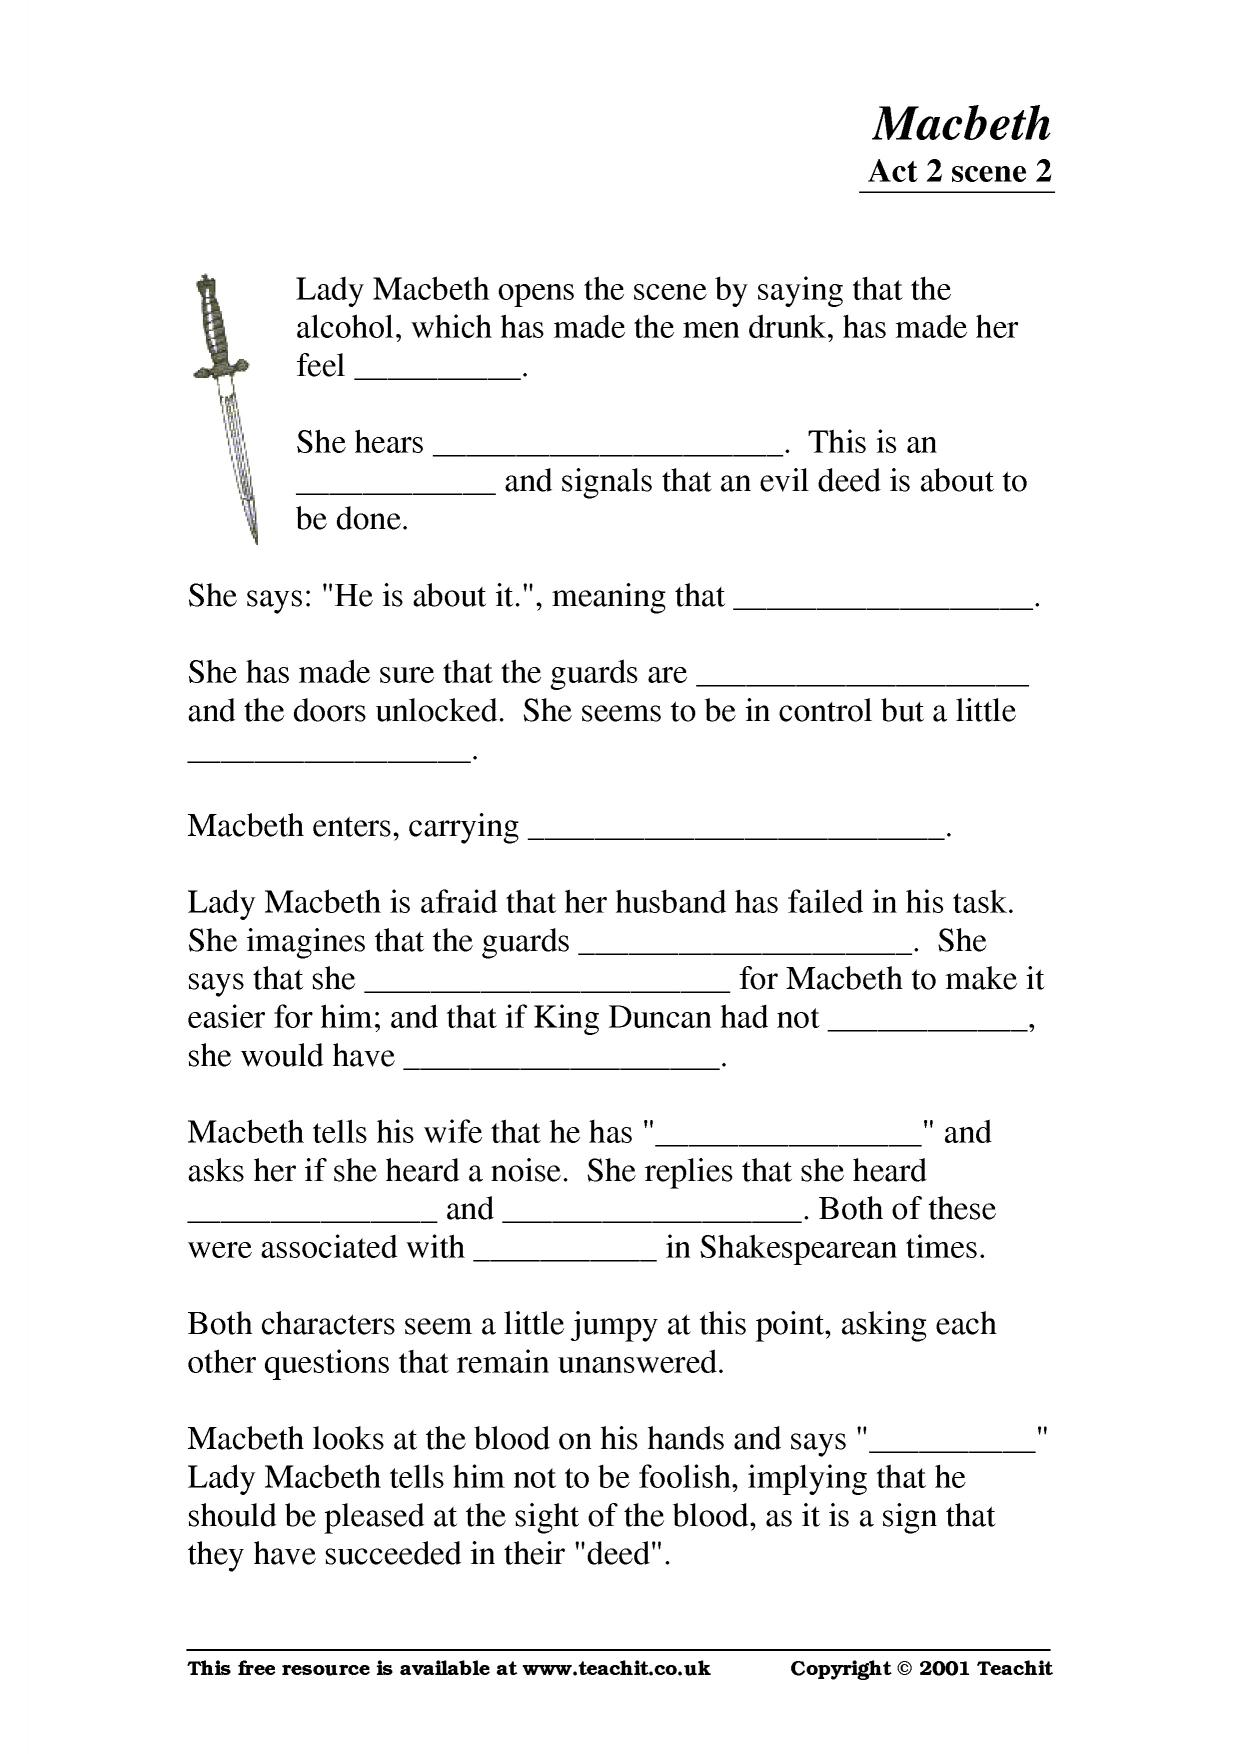 macbeth essay questions